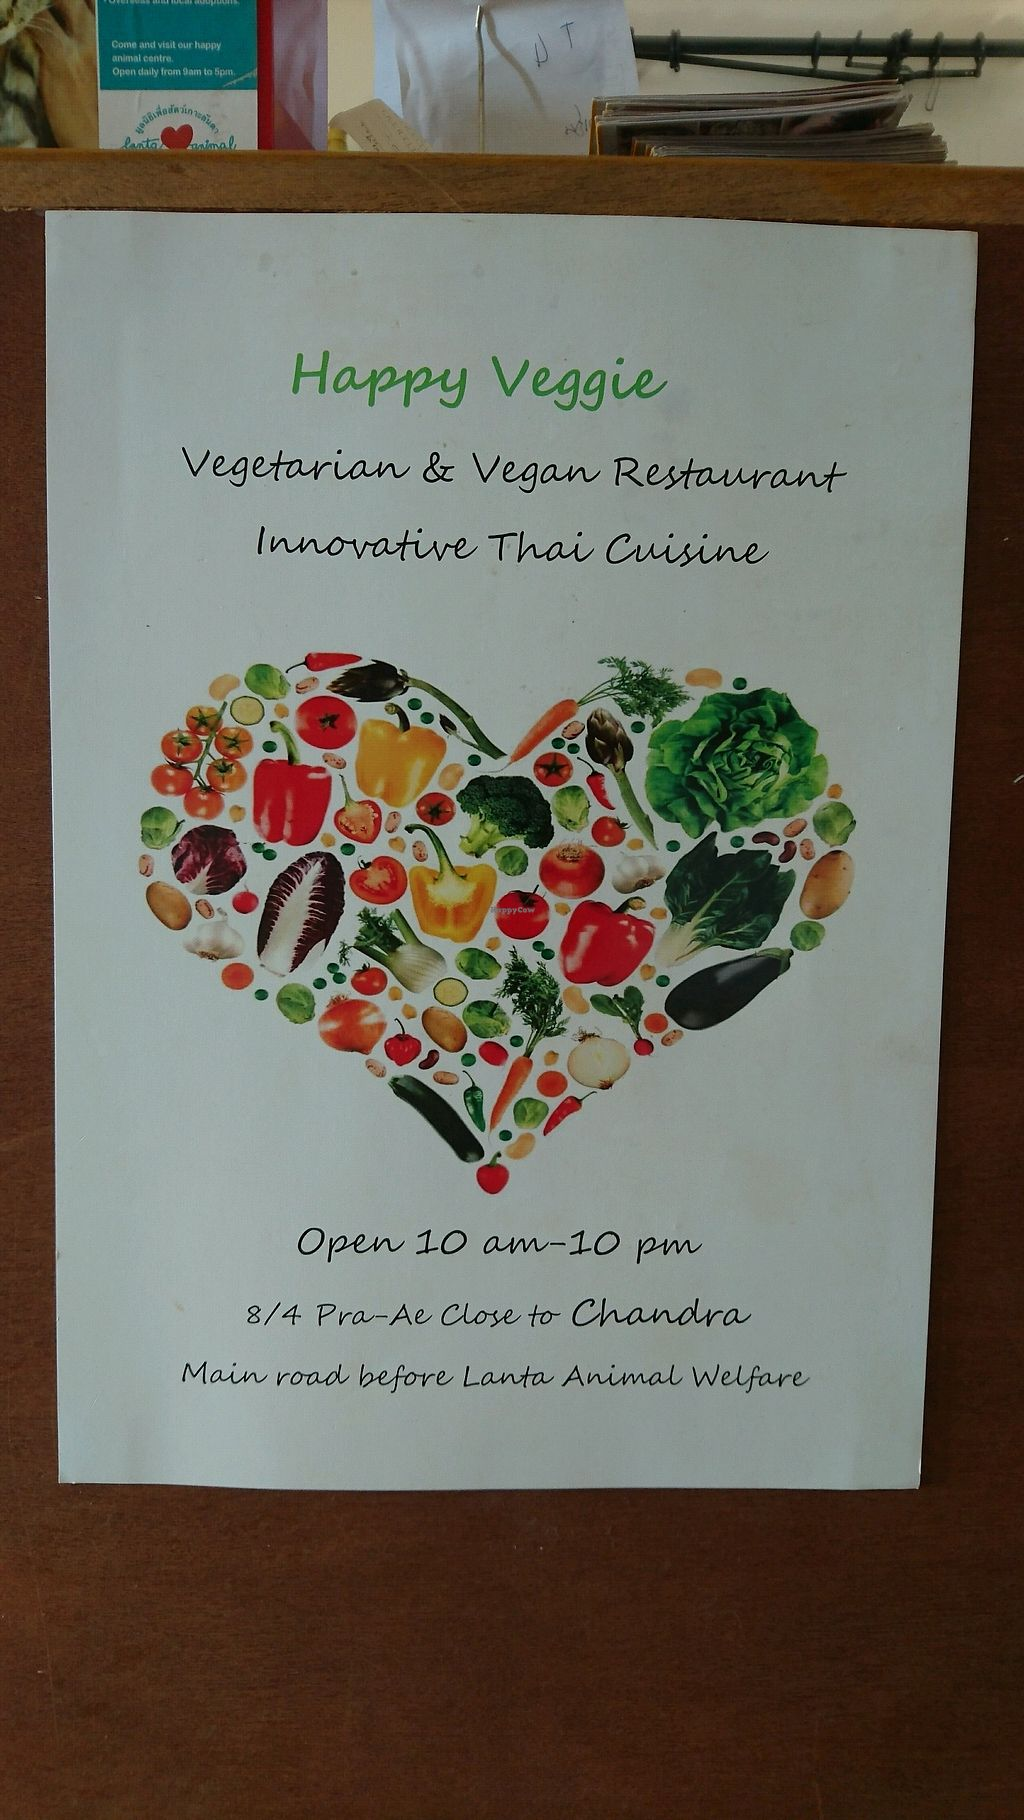 """Photo of Happy Veggie  by <a href=""""/members/profile/AnthonyMTL"""">AnthonyMTL</a> <br/>Happy Veggie Sign  <br/> December 15, 2017  - <a href='/contact/abuse/image/83999/335716'>Report</a>"""